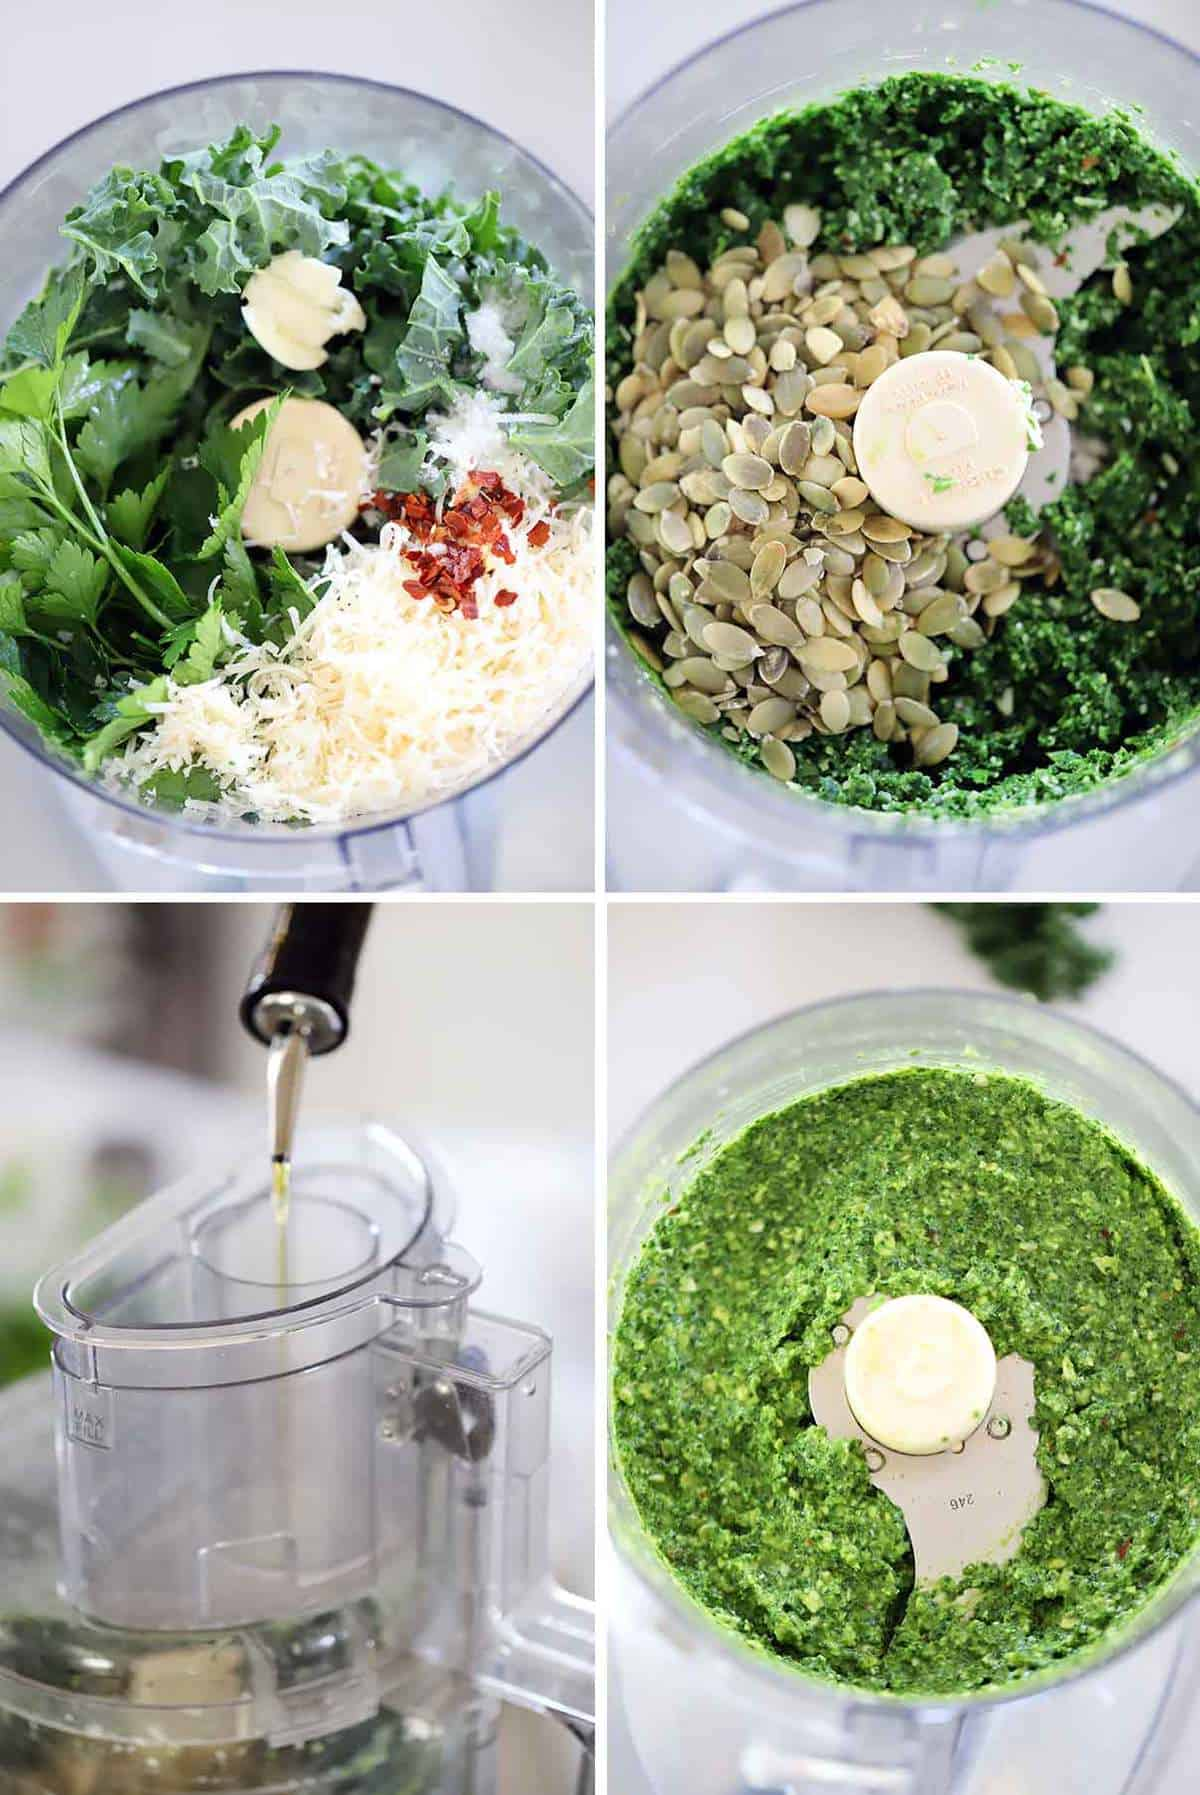 How to make kale pesto in a food processor photo collage.